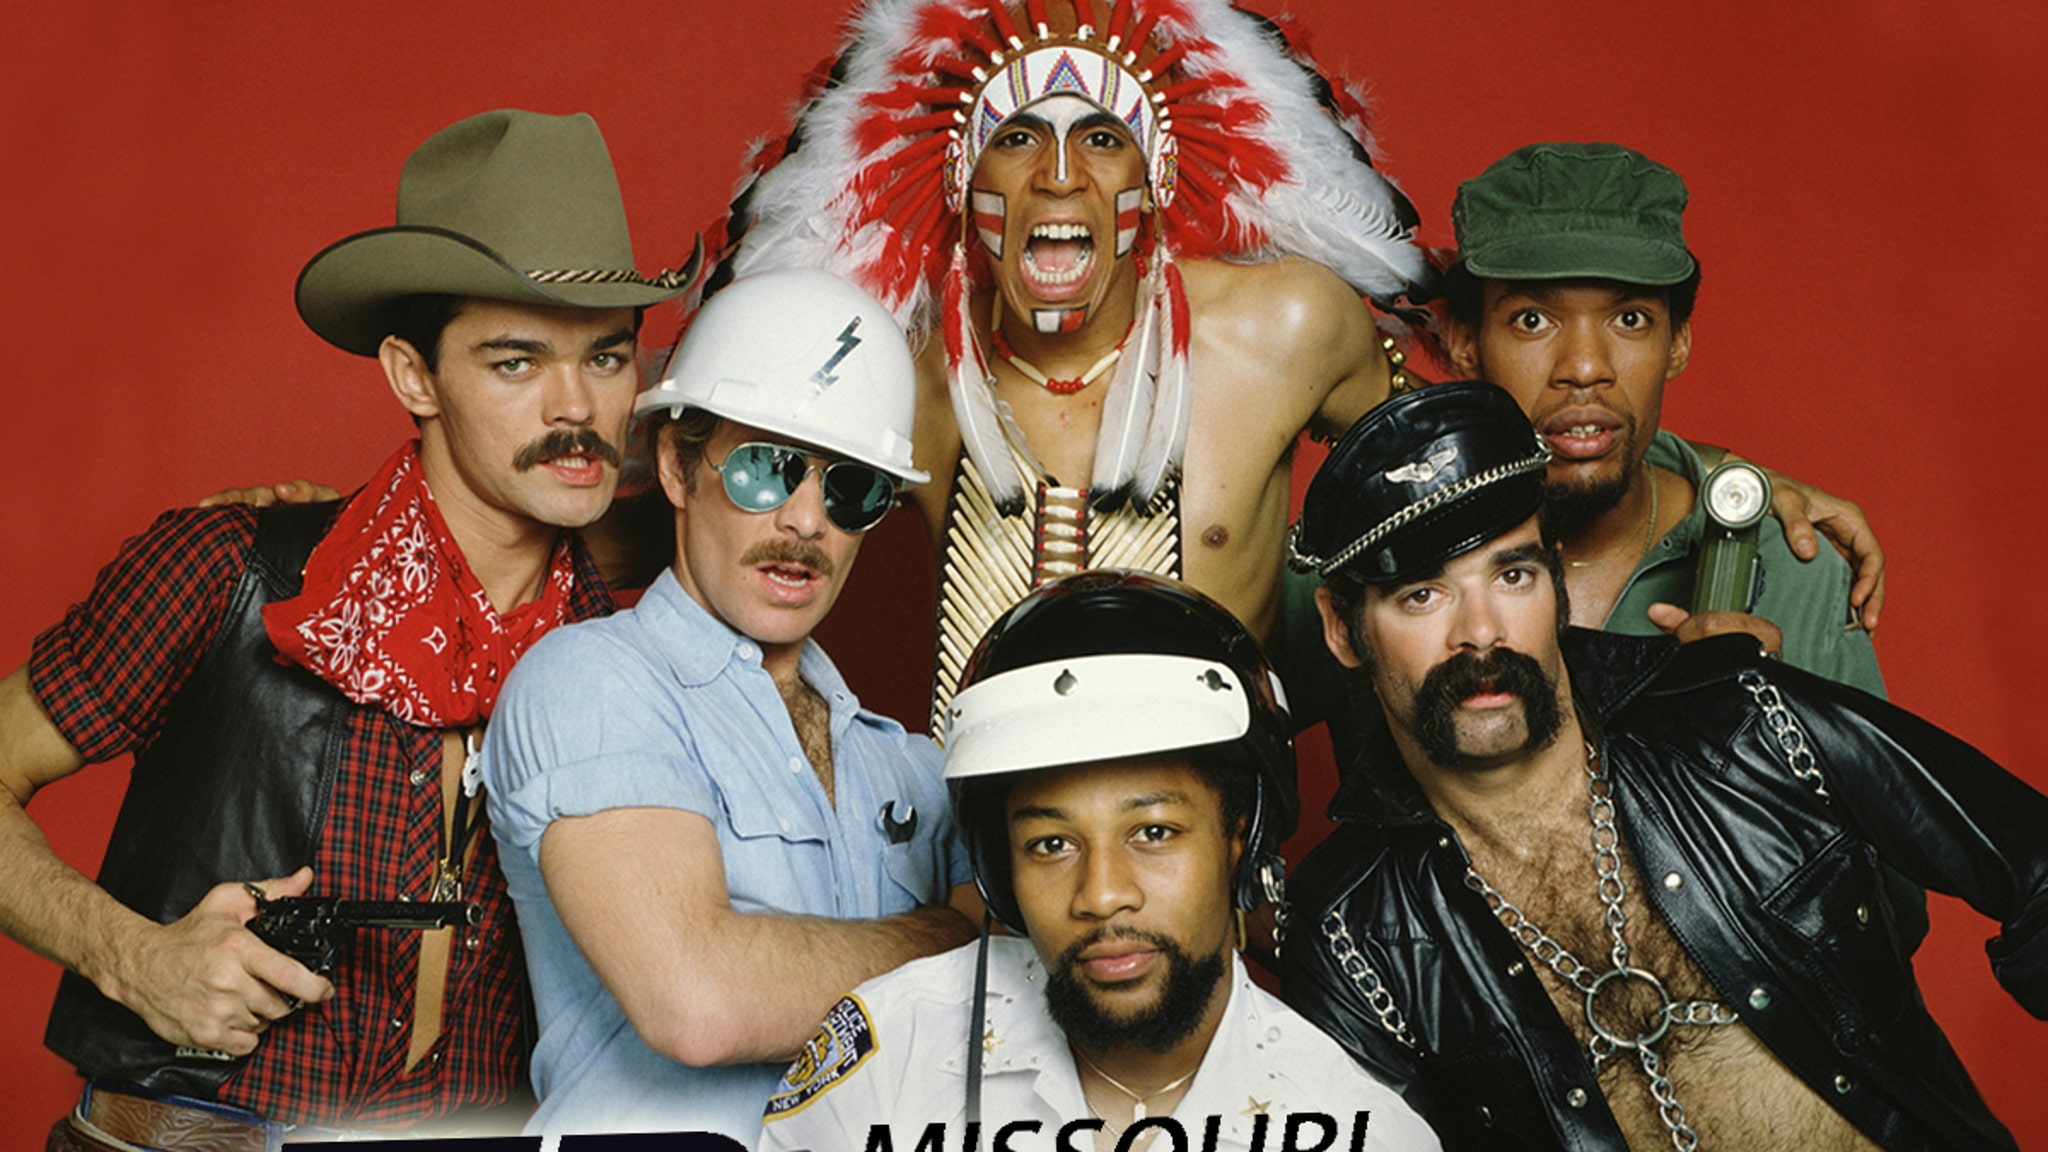 Village People Change Tune on 'YMCA' Spoof, Plan to Work with Farmers